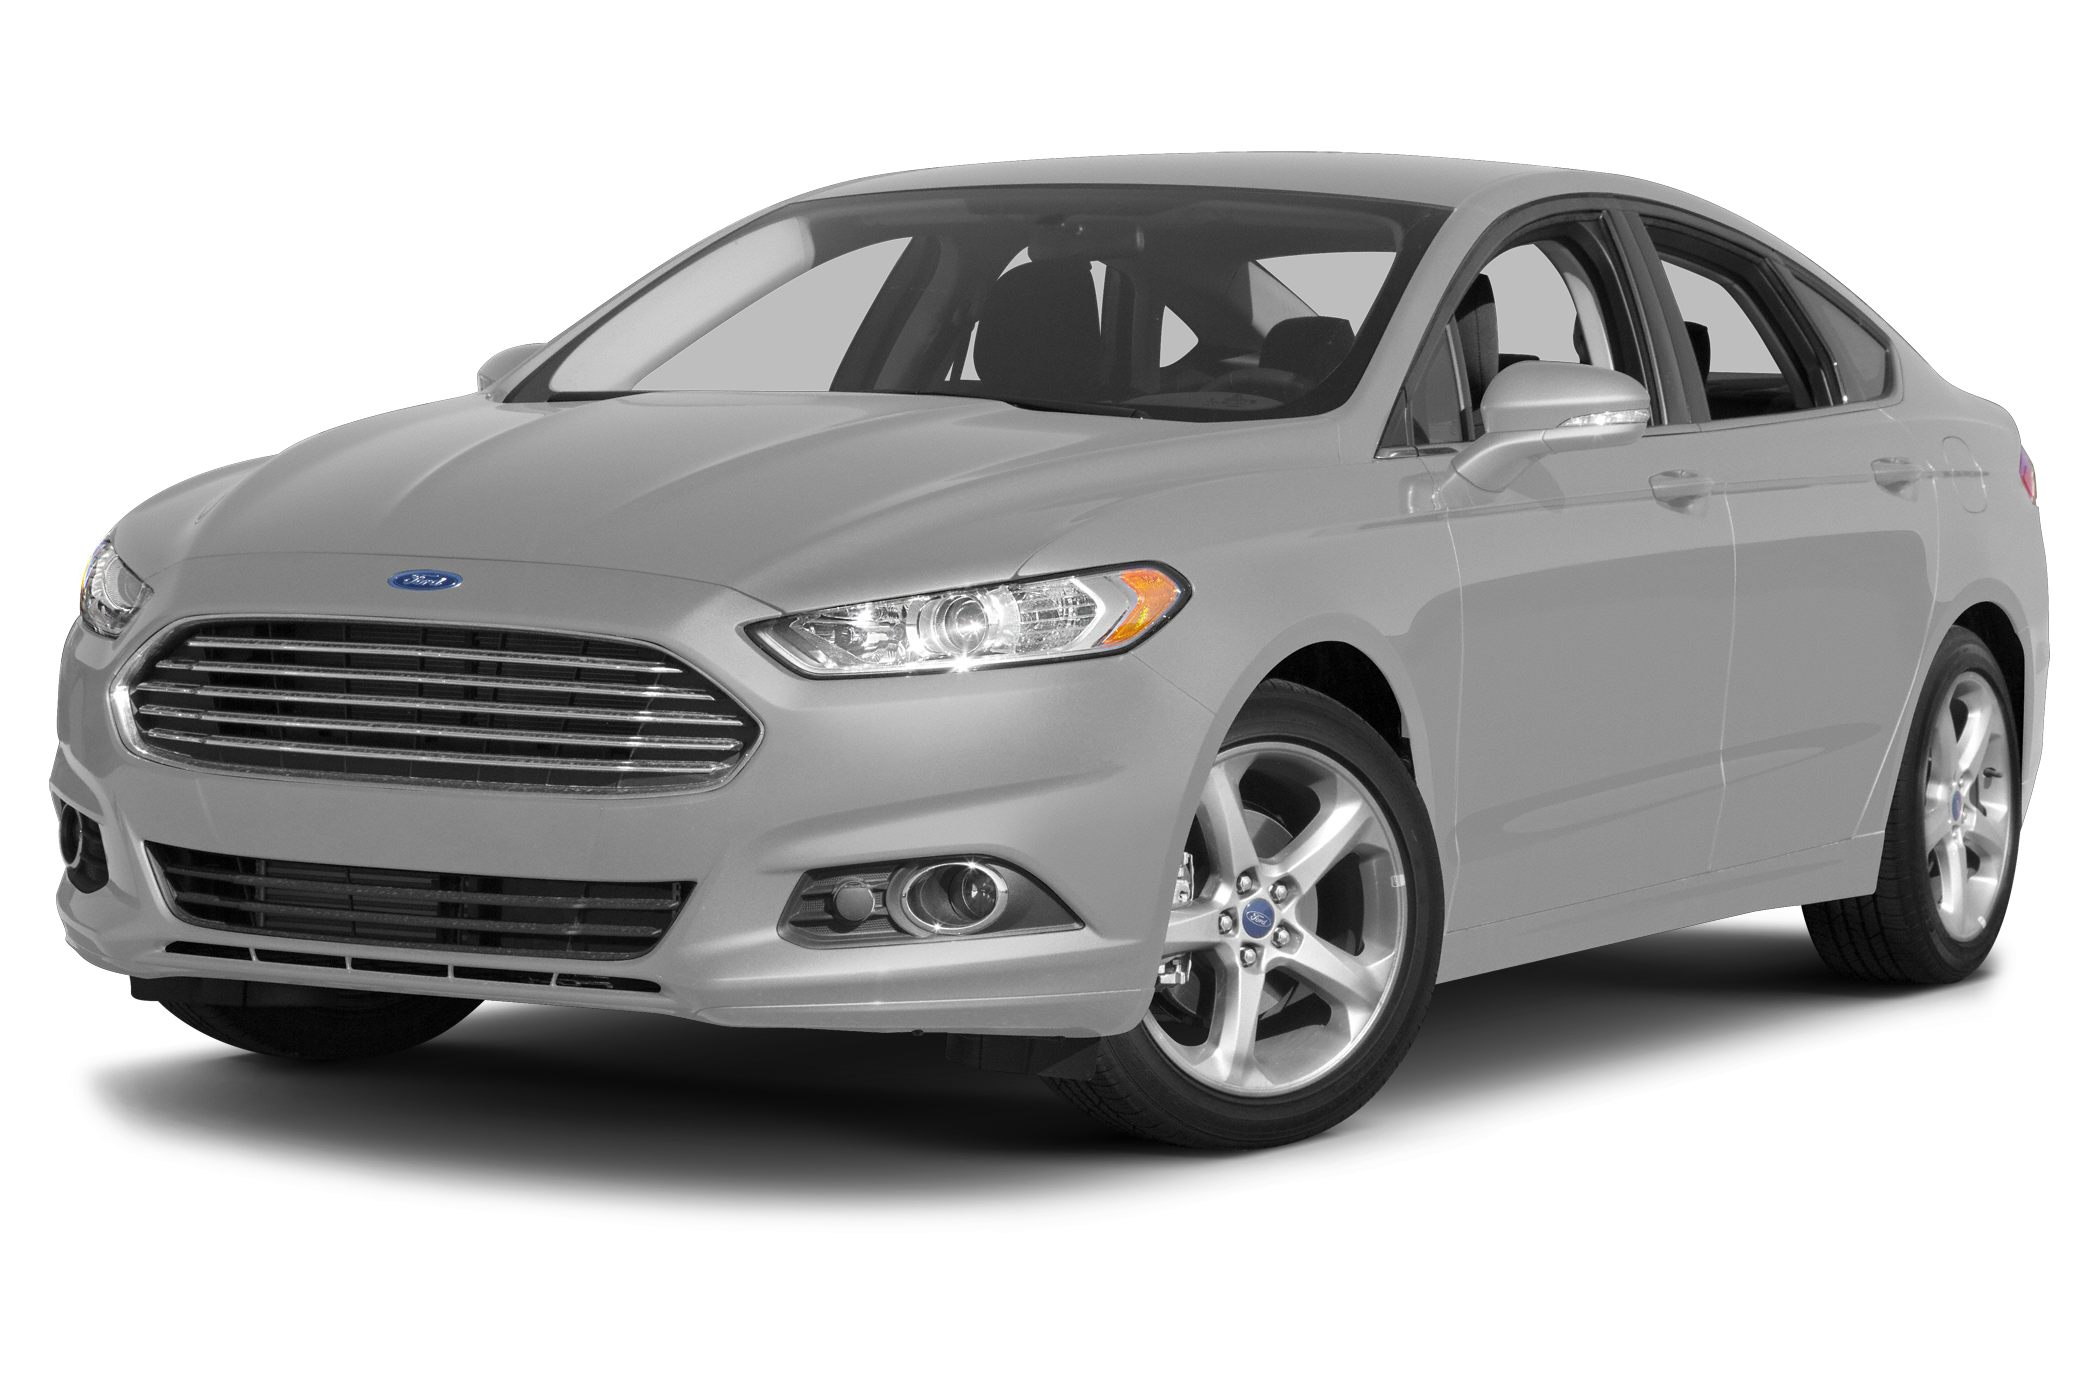 2015 Ford Fusion SE Sedan for sale in Stockton for $26,455 with 0 miles.